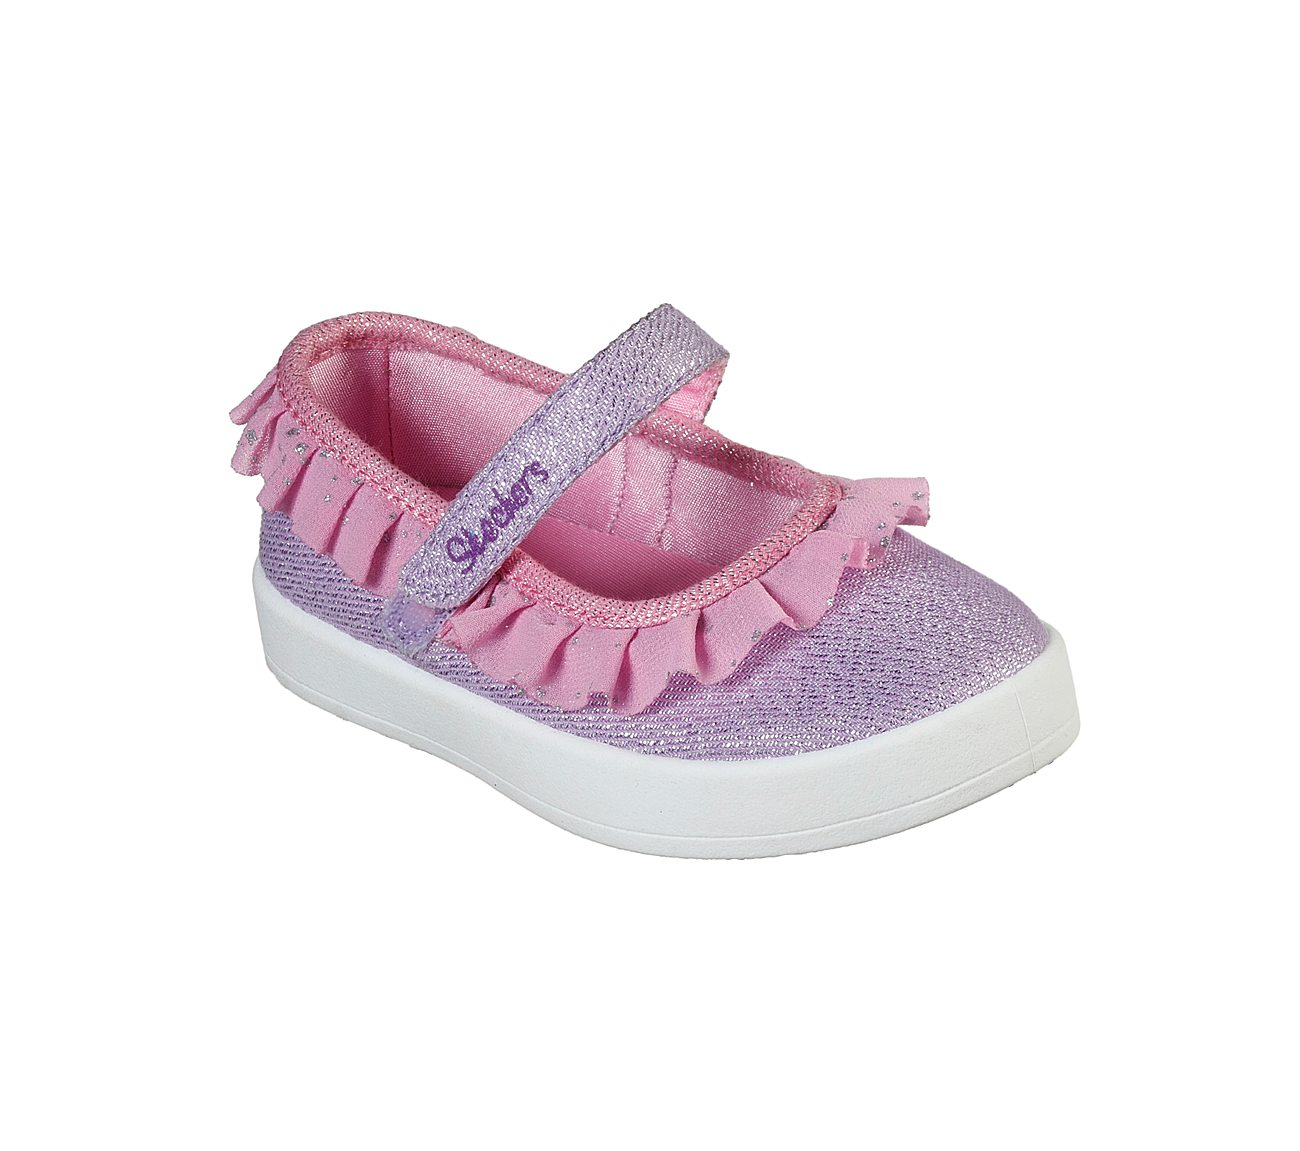 buy good pretty nice newest collection Lil BOBS B-Loved 2.0 - Baby Ballerina